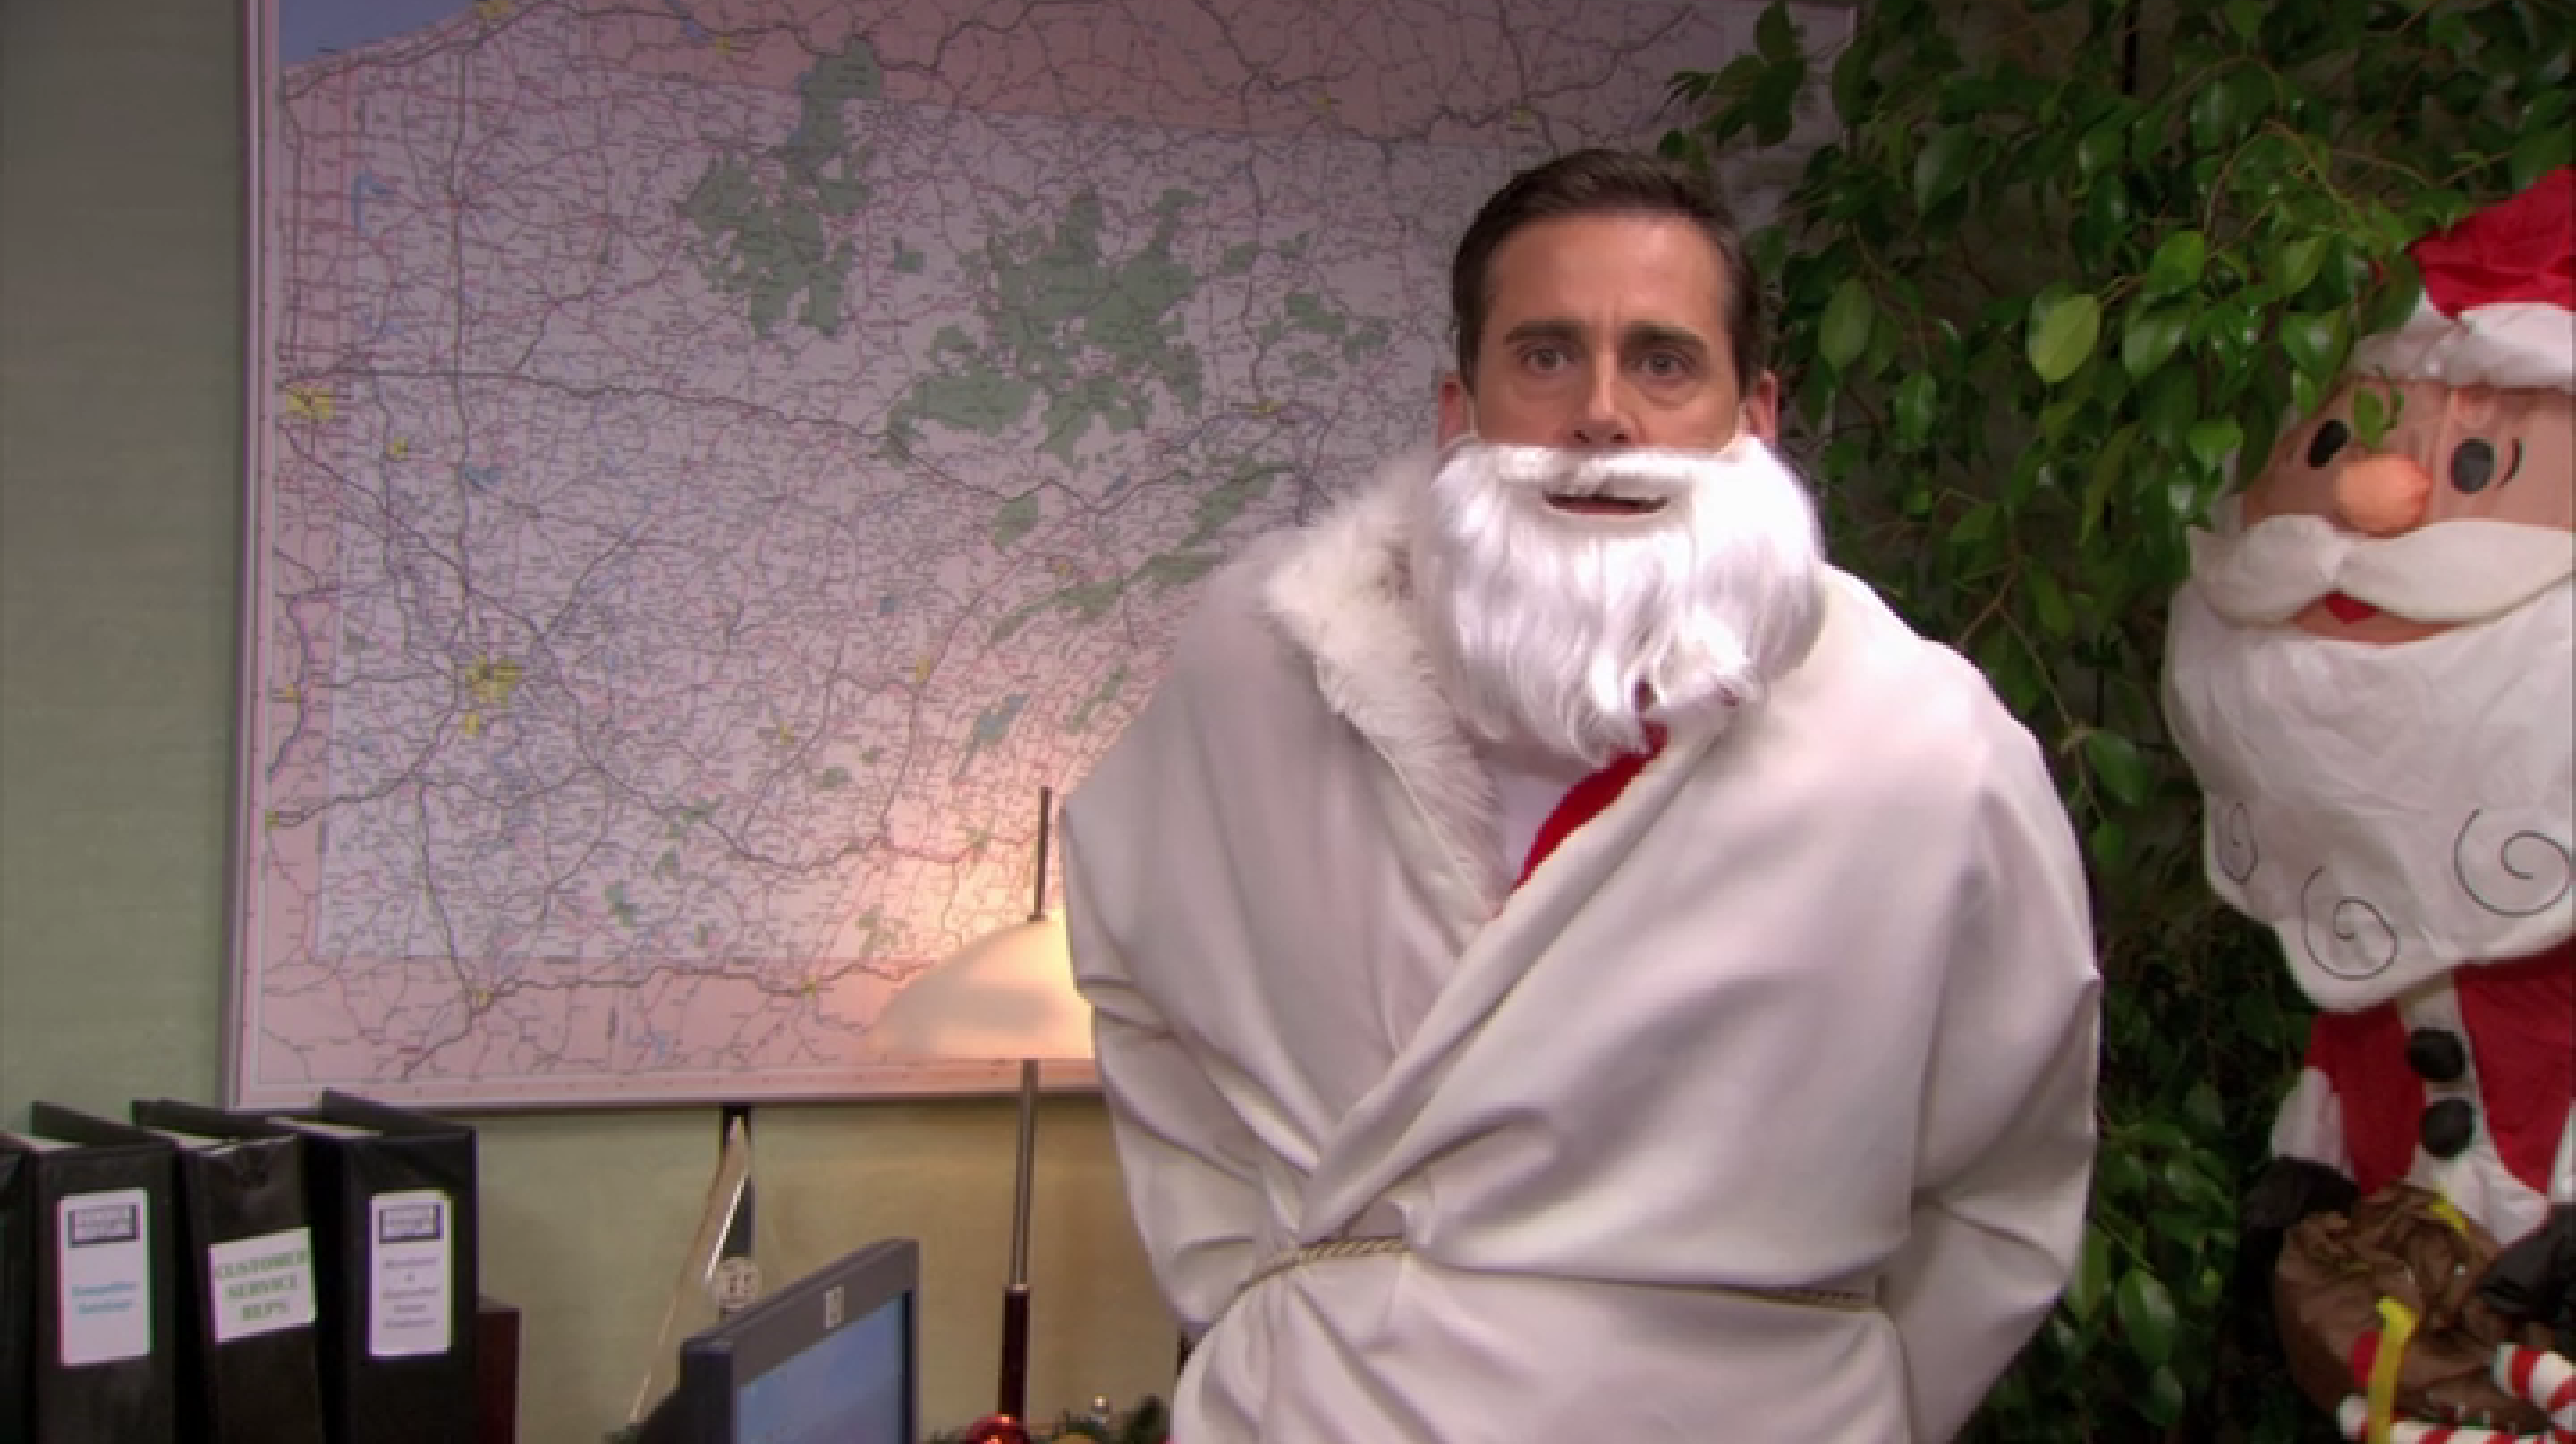 cover image credit httpdailynorthwesterncomwp contentuploads201411season 6png - The Office Dwight Christmas